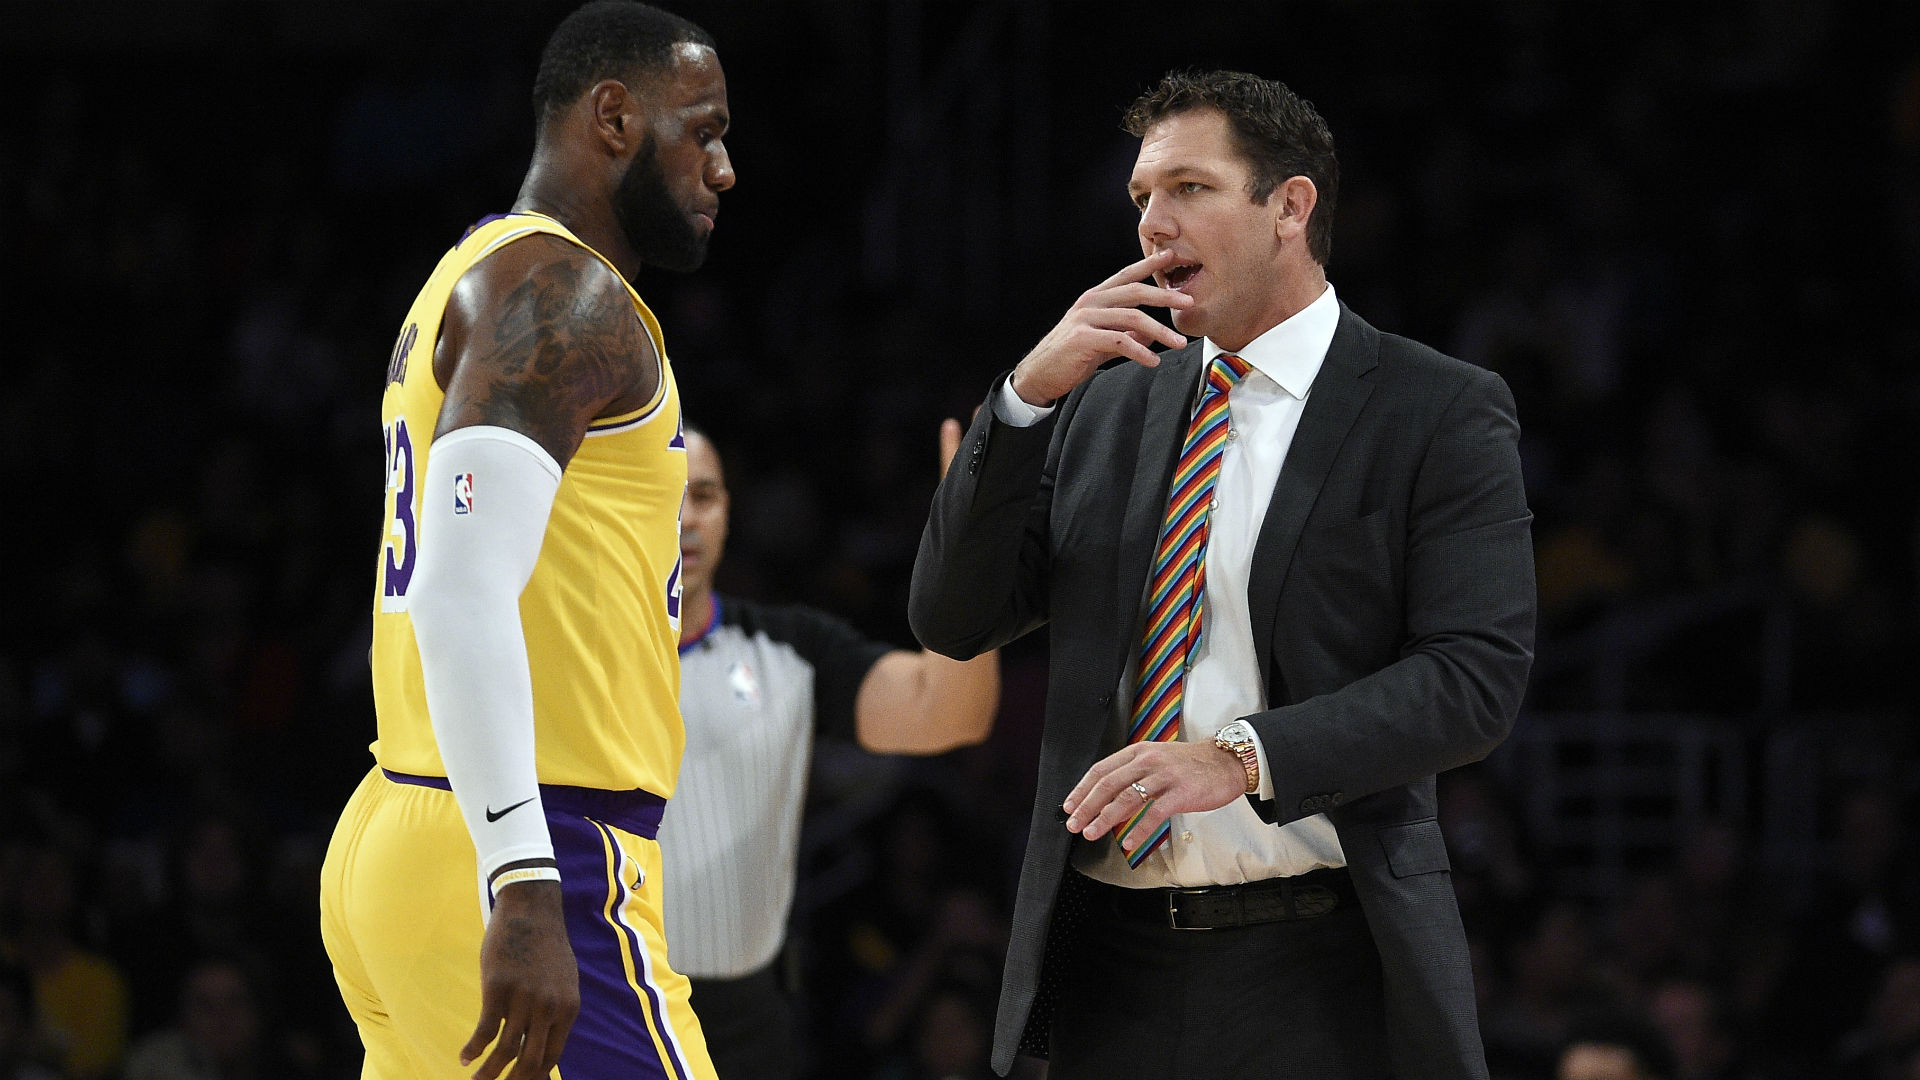 LeBron James suffers loss in first game with Los Angeles Lakers